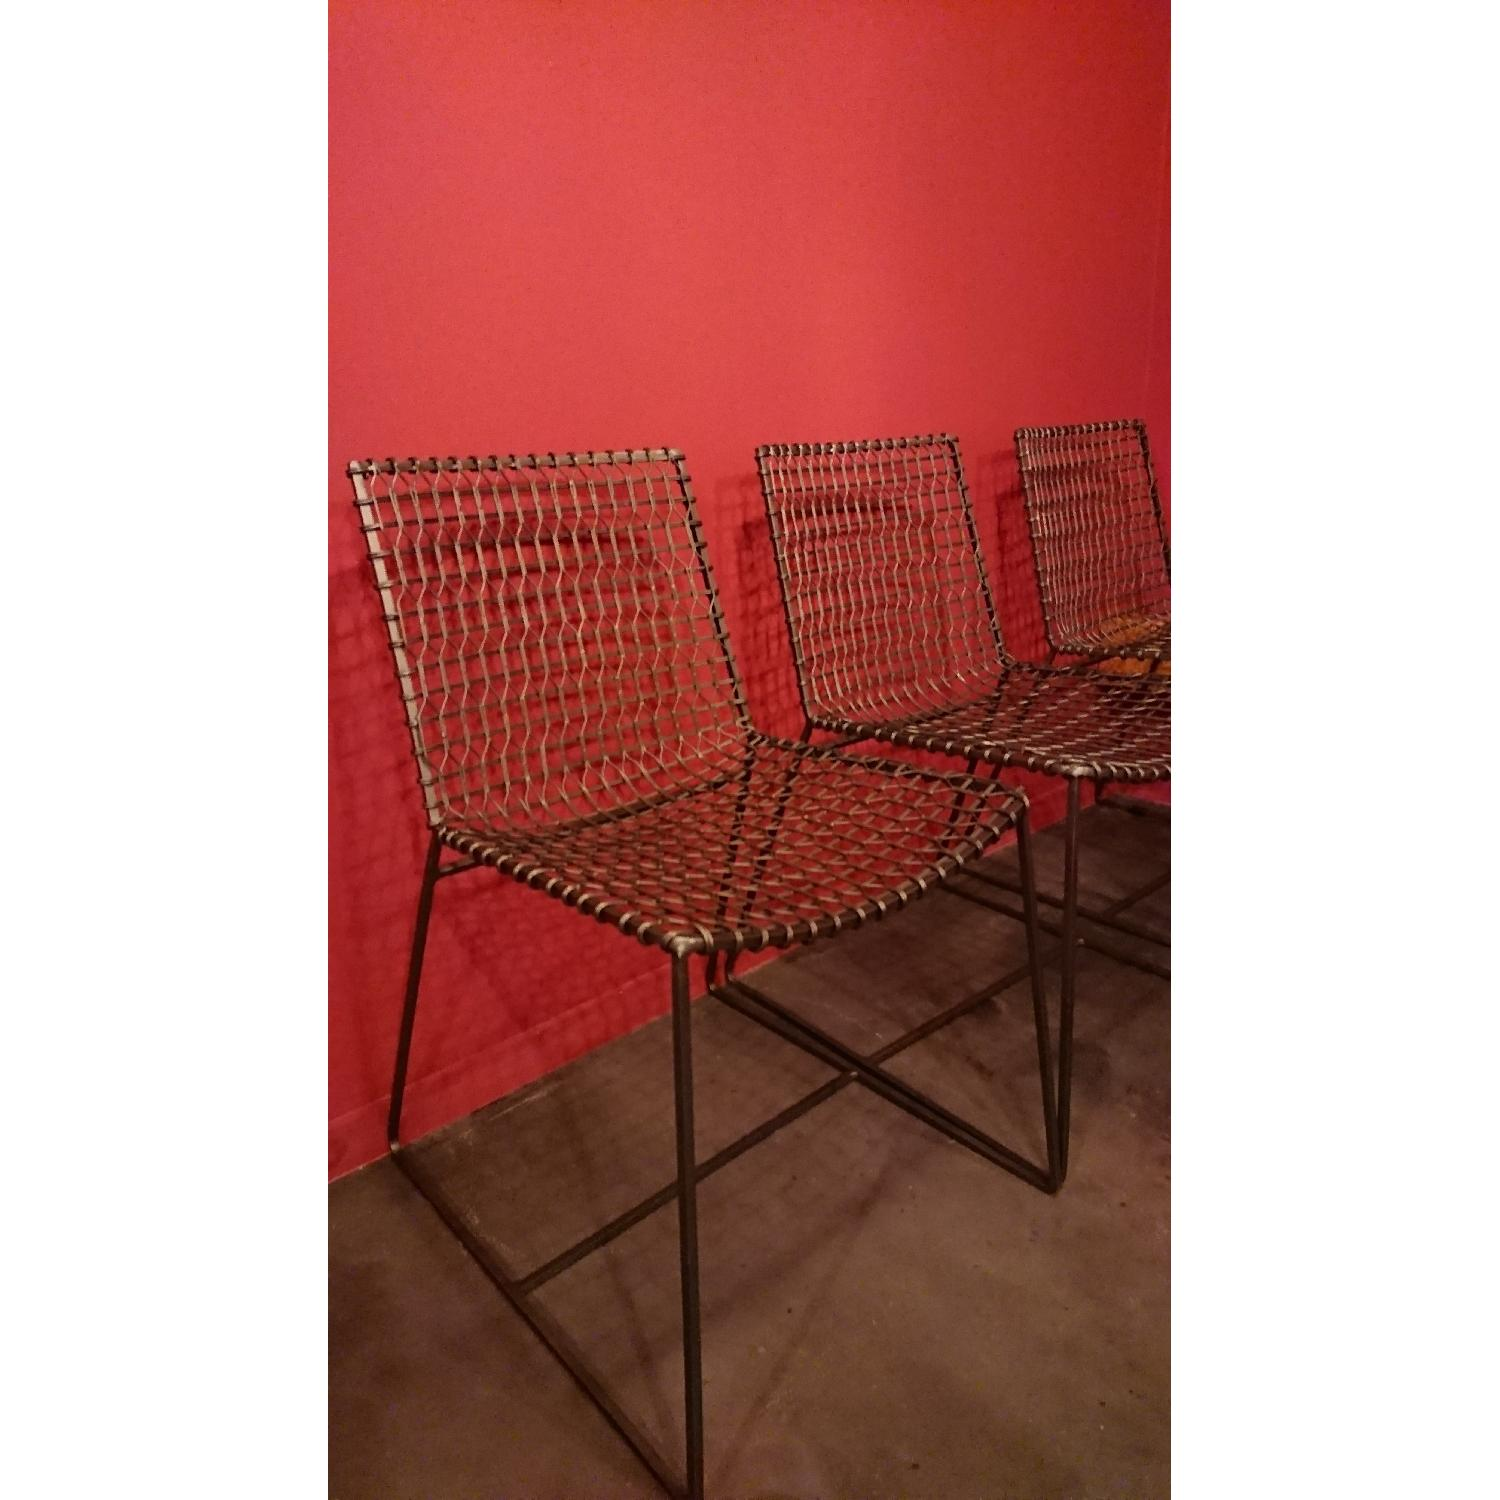 Crate & Barrel Tig Metal Dining Chairs - image-3